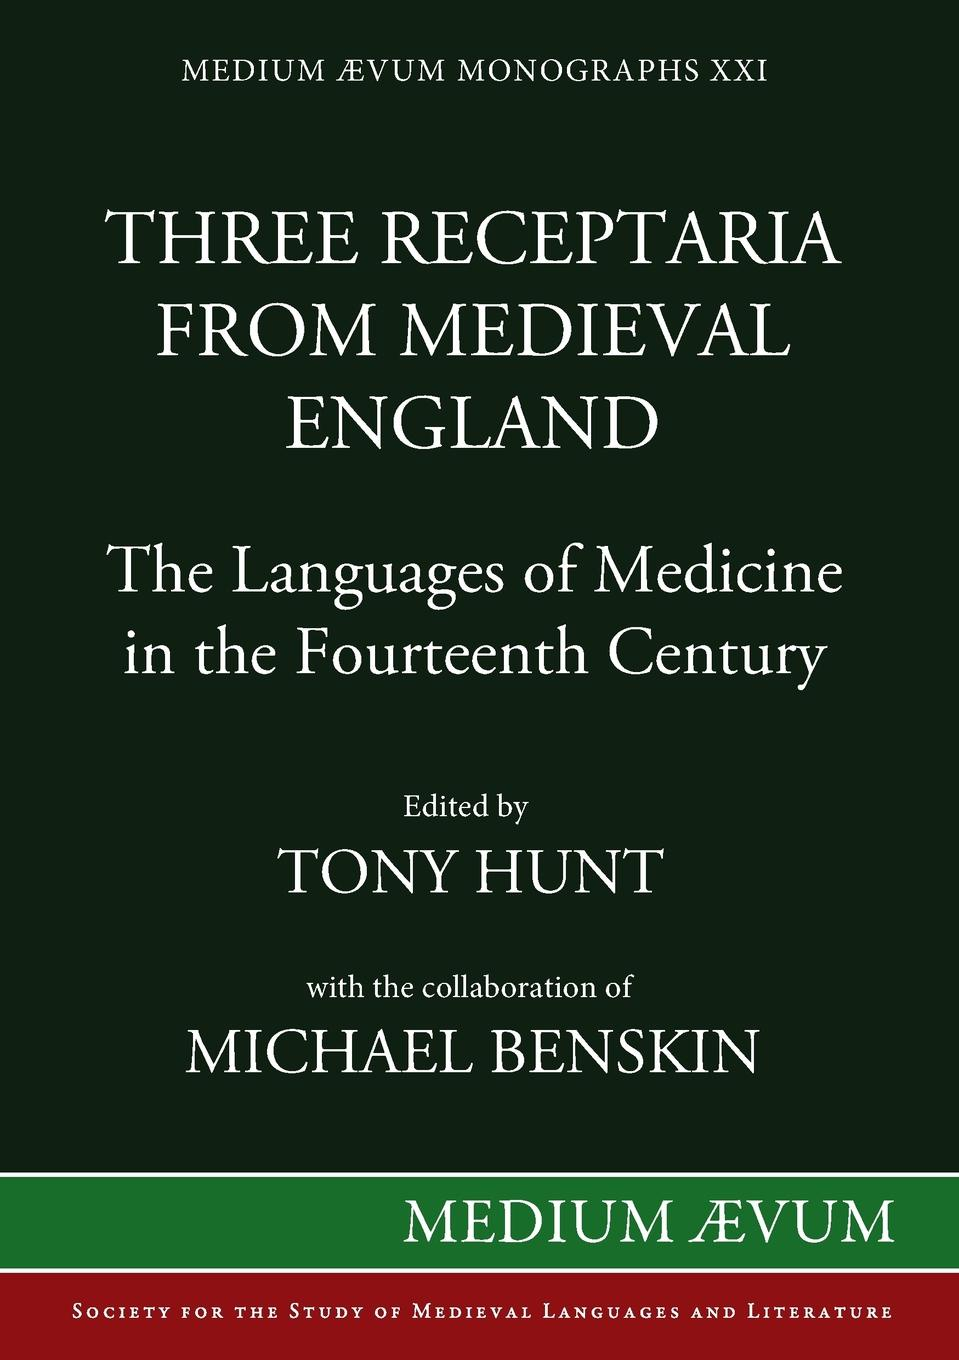 Three Receptaria from Medieval England. The Languages of Medicine in the Fourteenth Century